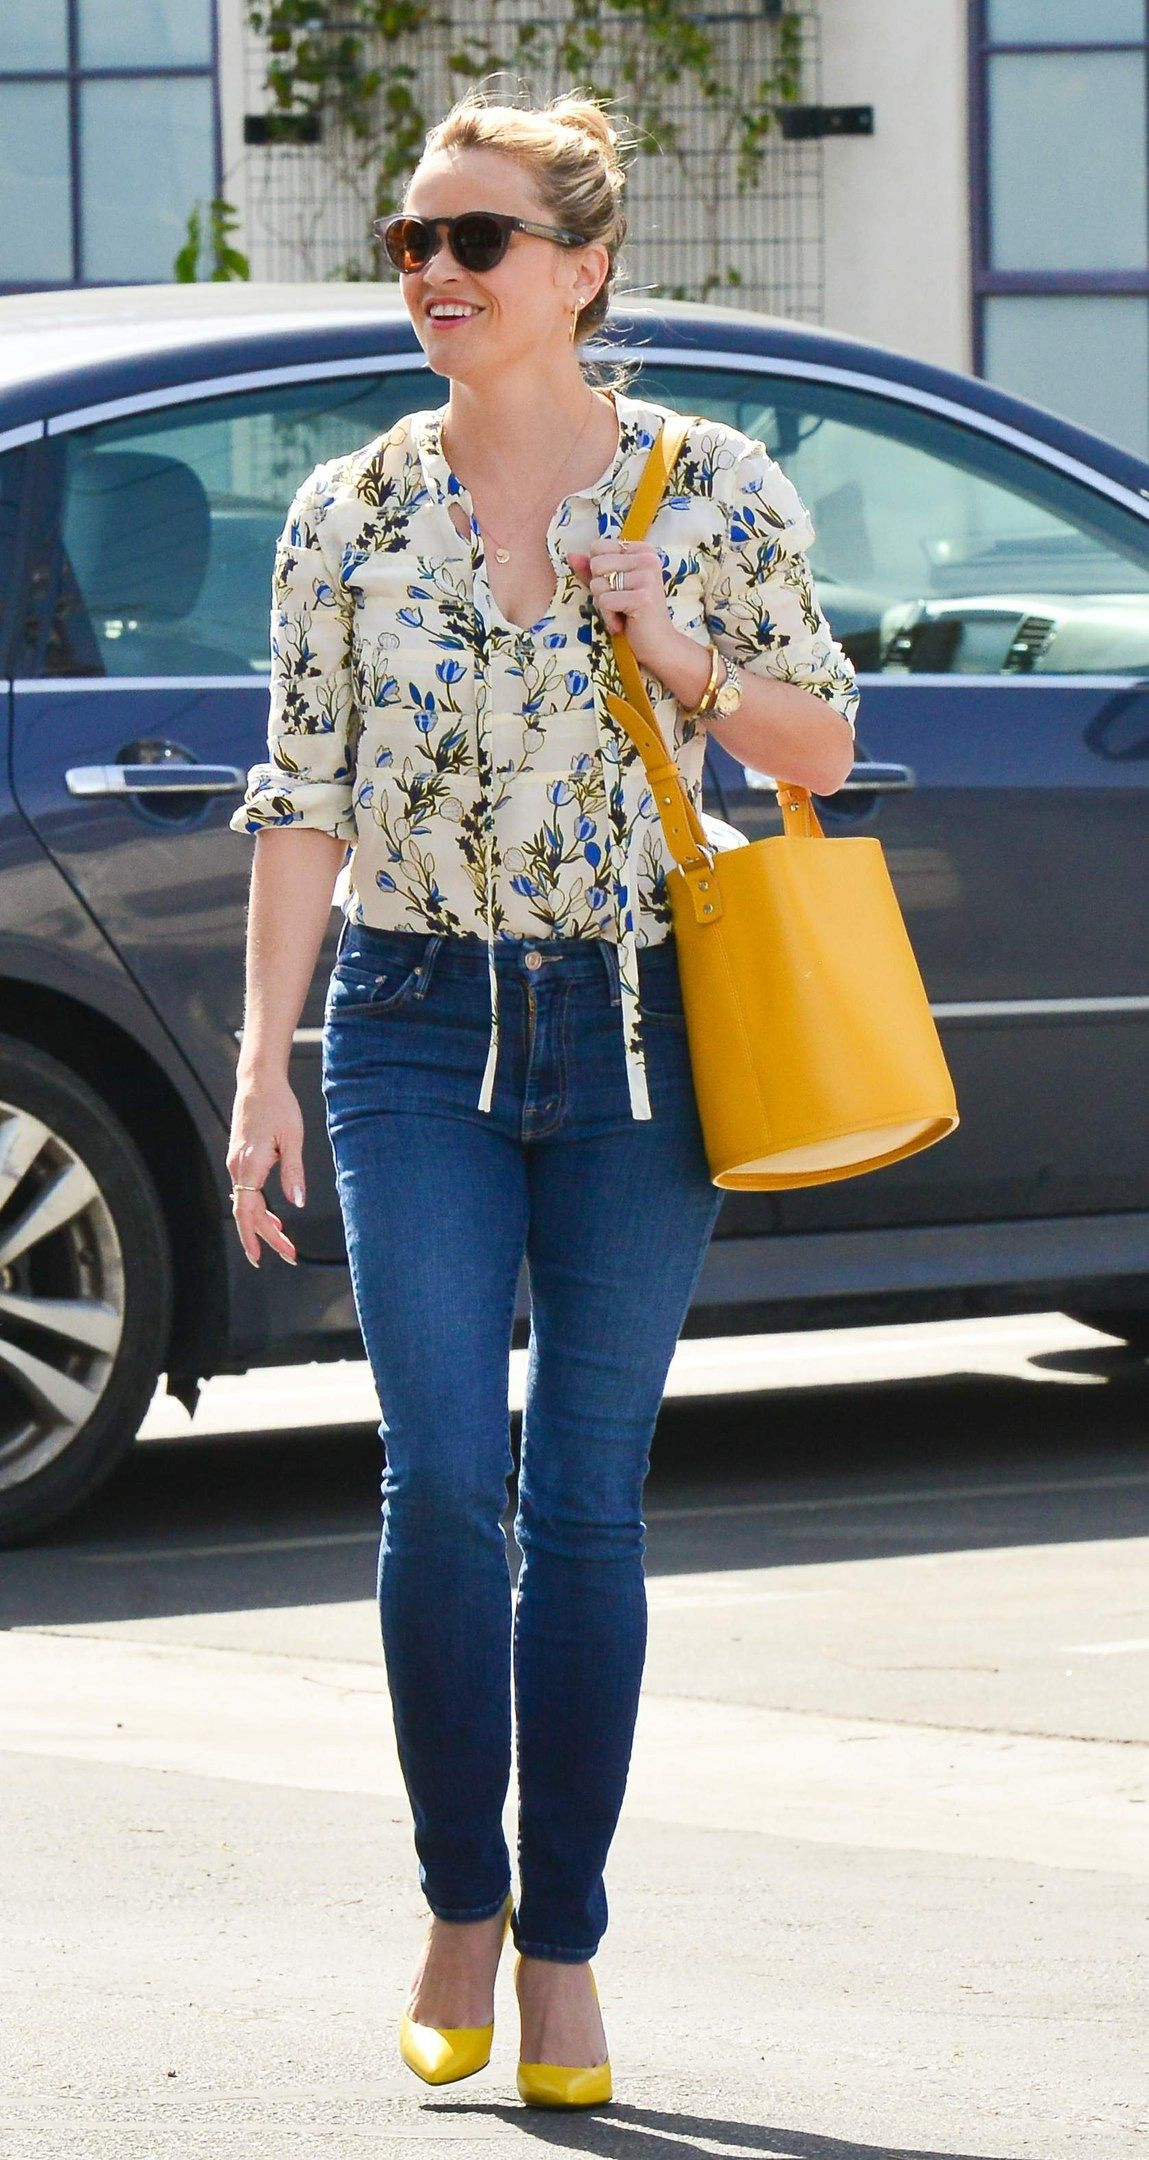 Reese Witherspoons Cute Casual Mom Style Reese Witherspoons Cute Casual Mom Style new pics